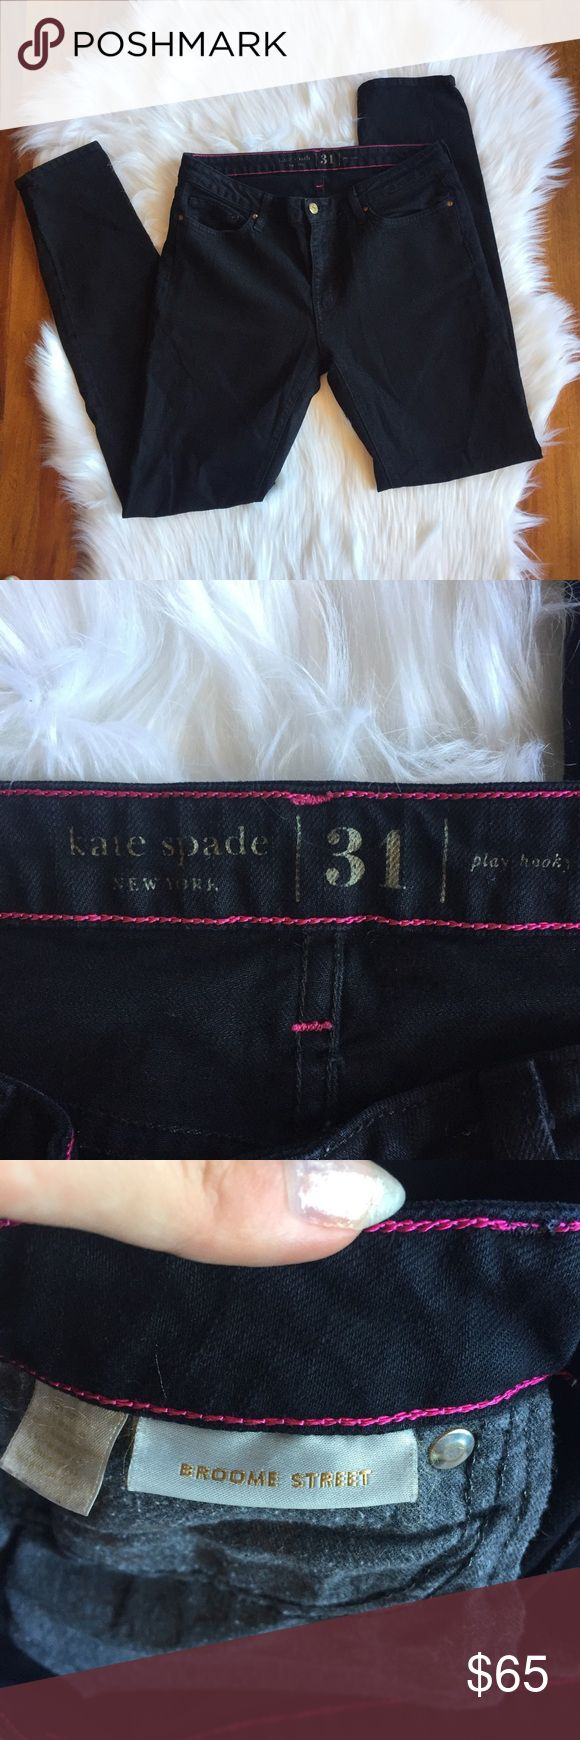 Kate Spade Broome Street Black Skinny Jeans Excellent pre worn condition. So cute and perfect for the upcoming fall season. All sales final.   🌟No Returns If Item Doesn't Fit - Please Ask For Measurements Instead (Per Posh Rules)  🌟 No Trades 🌟 I Do Not Model kate spade Jeans Skinny